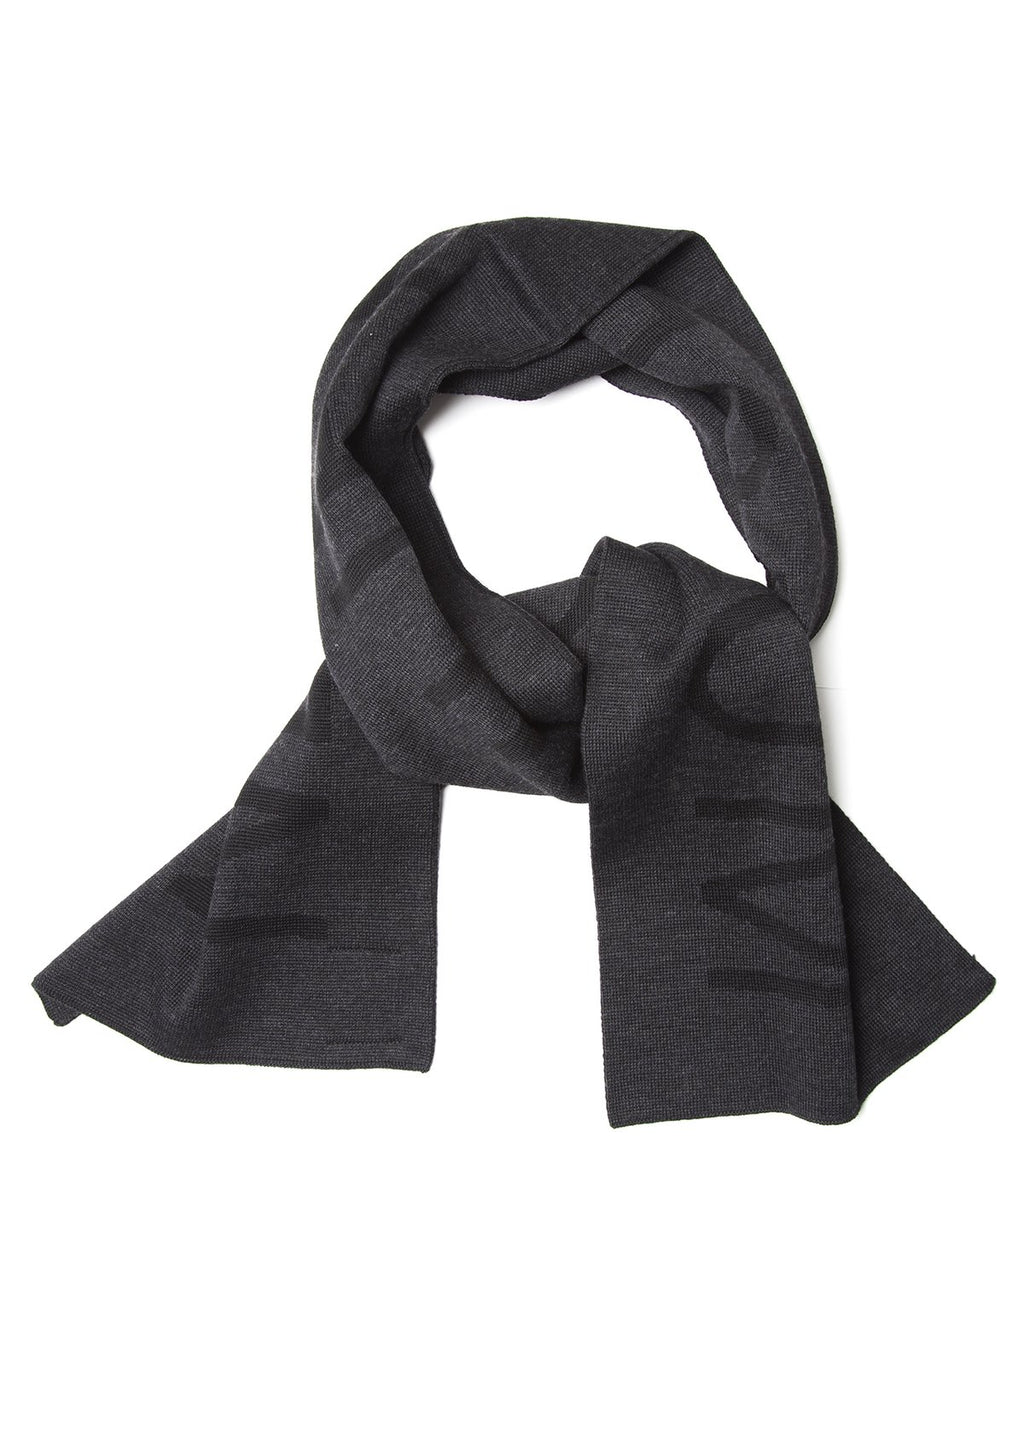 Recycled PET Scarf - Black Coal